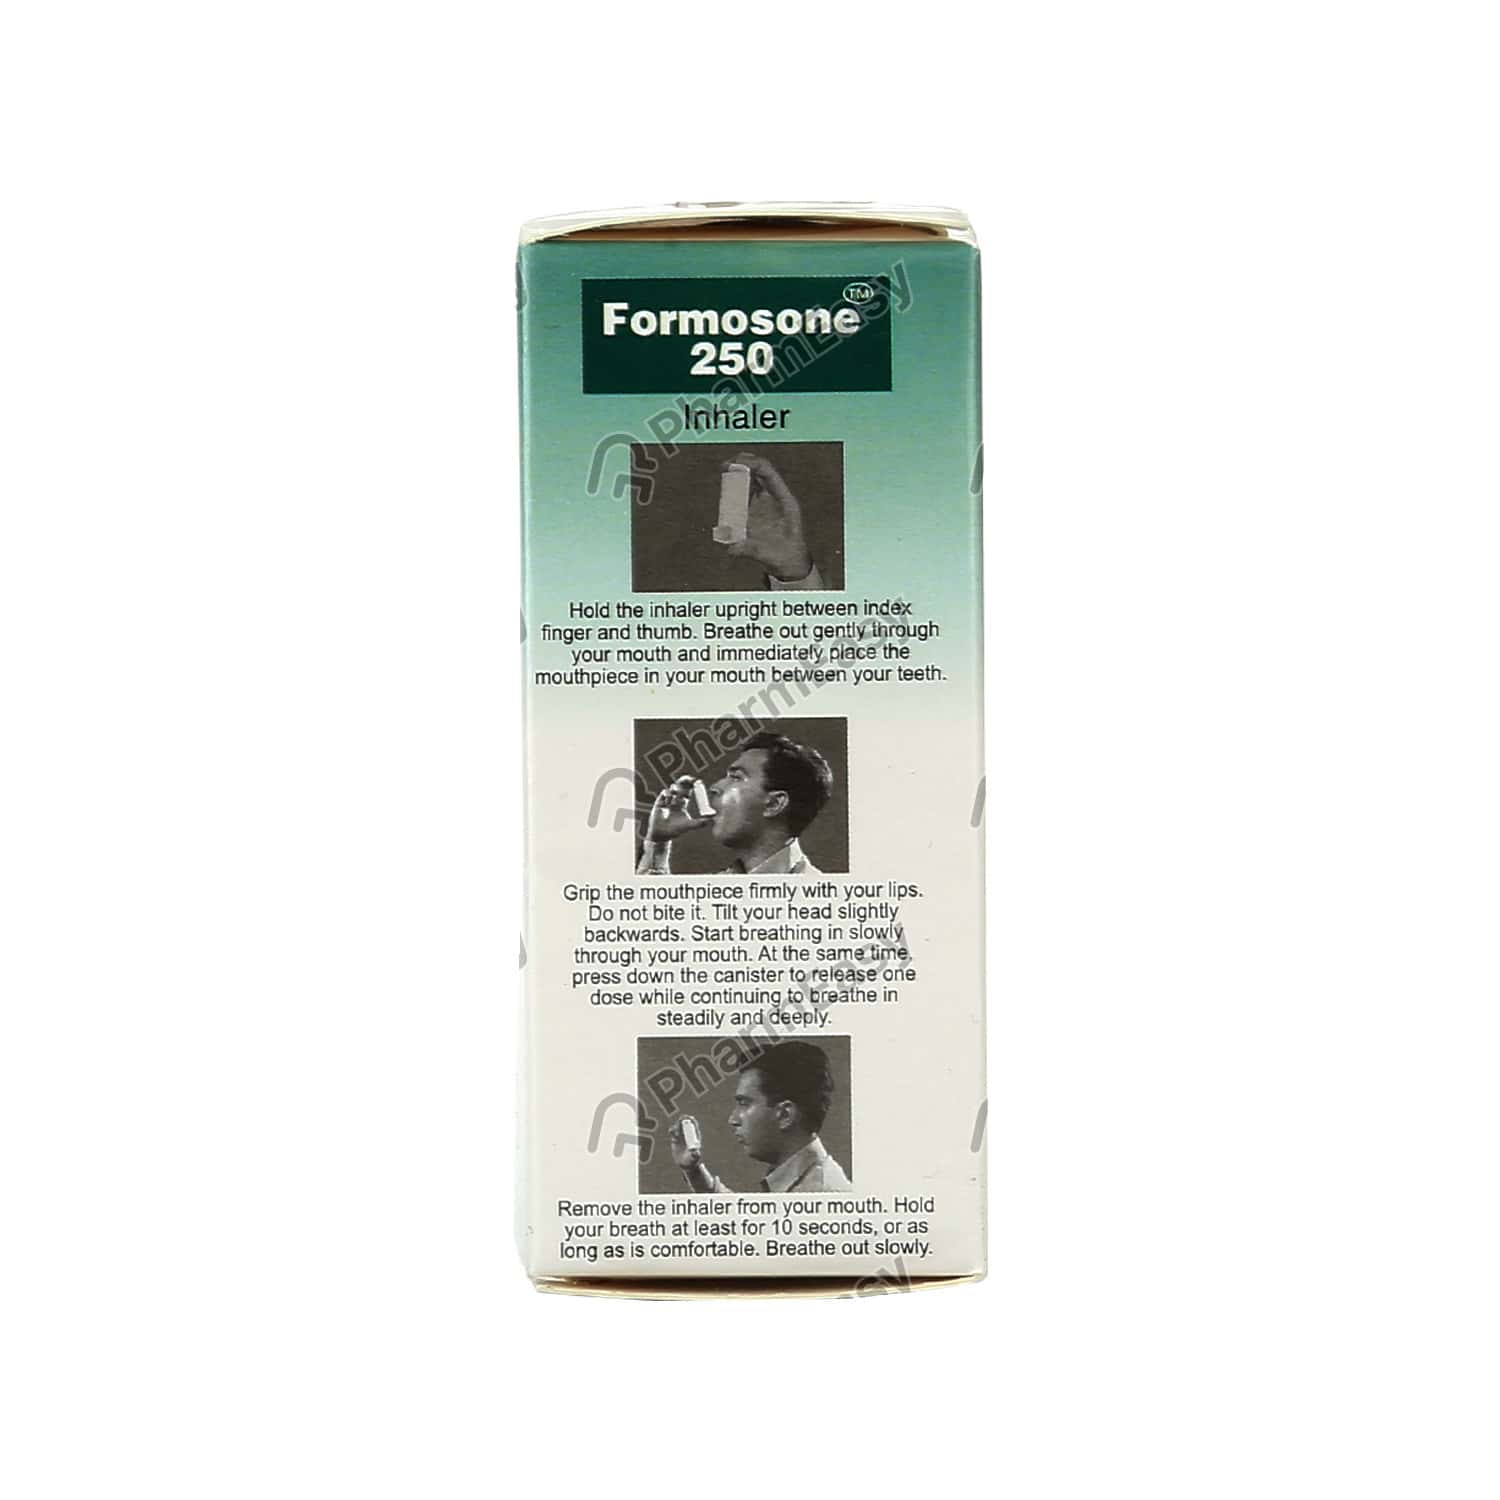 Formosone 250mcg Inhaler 120md